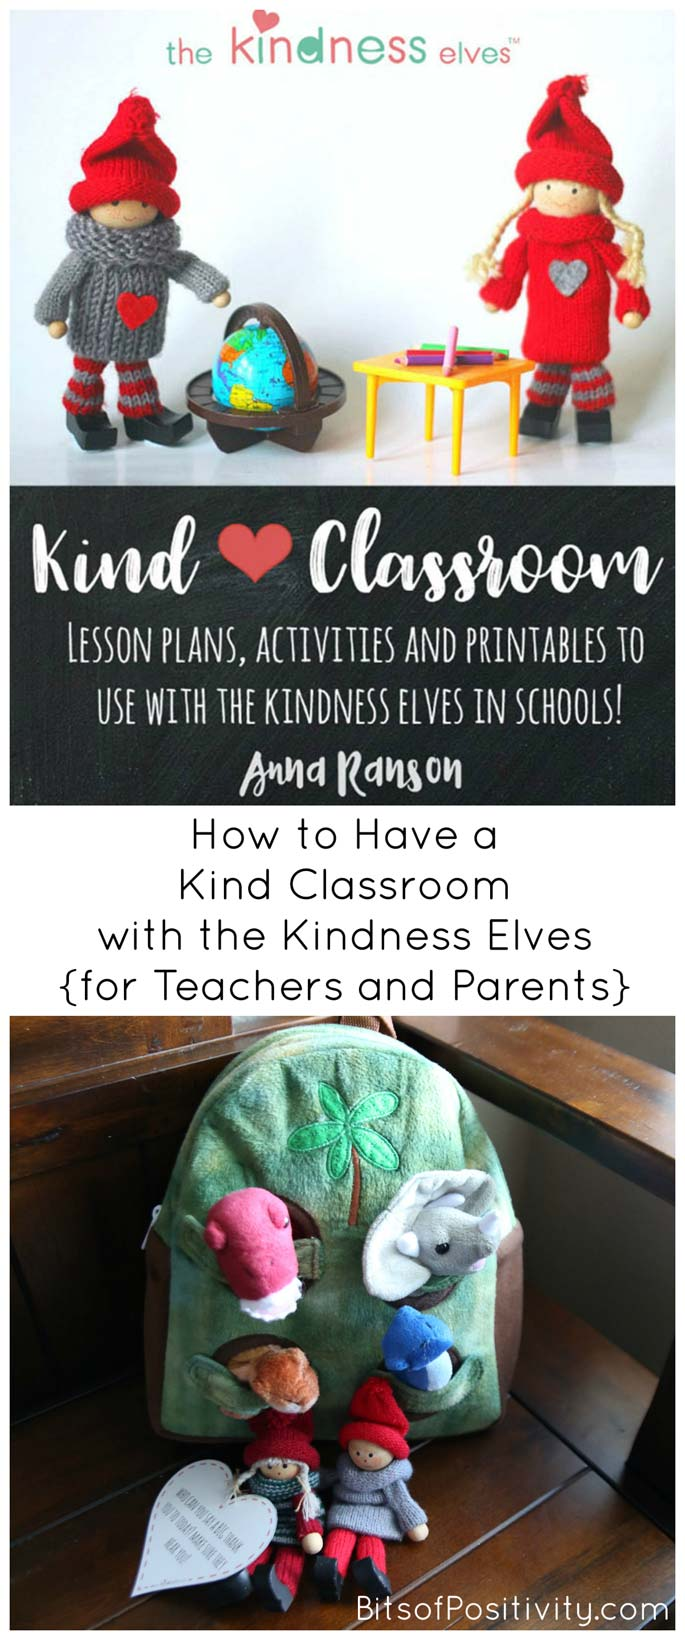 how-to-have-a-kind-classroom-with-the-kindness-elves-for-parents-and-teachers